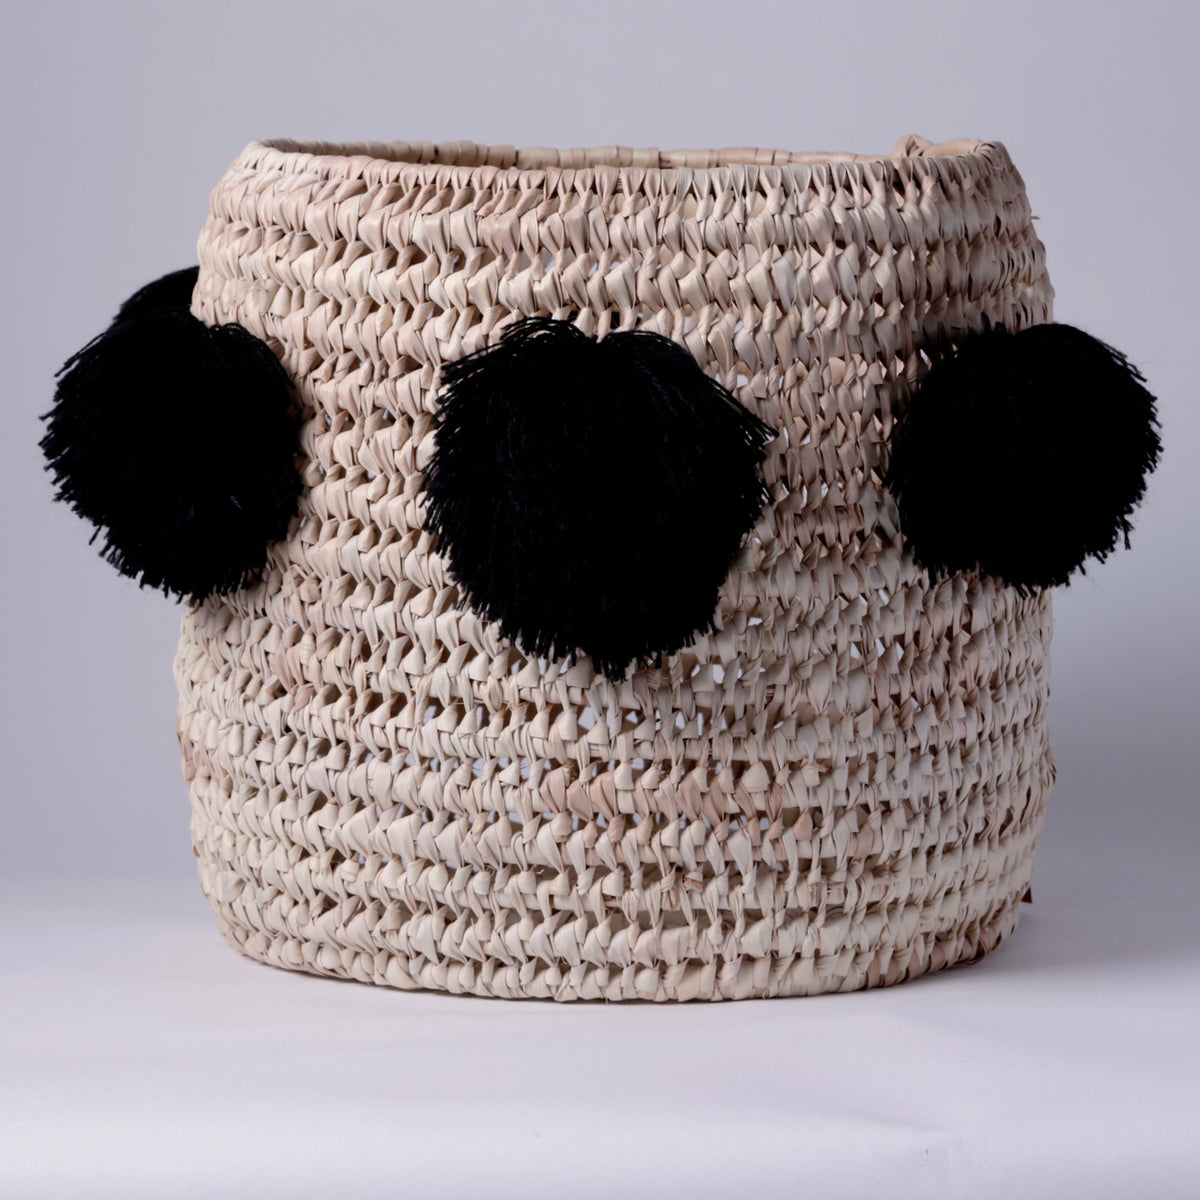 STRAW LAUNDRY BASKET, BLACK POM POM